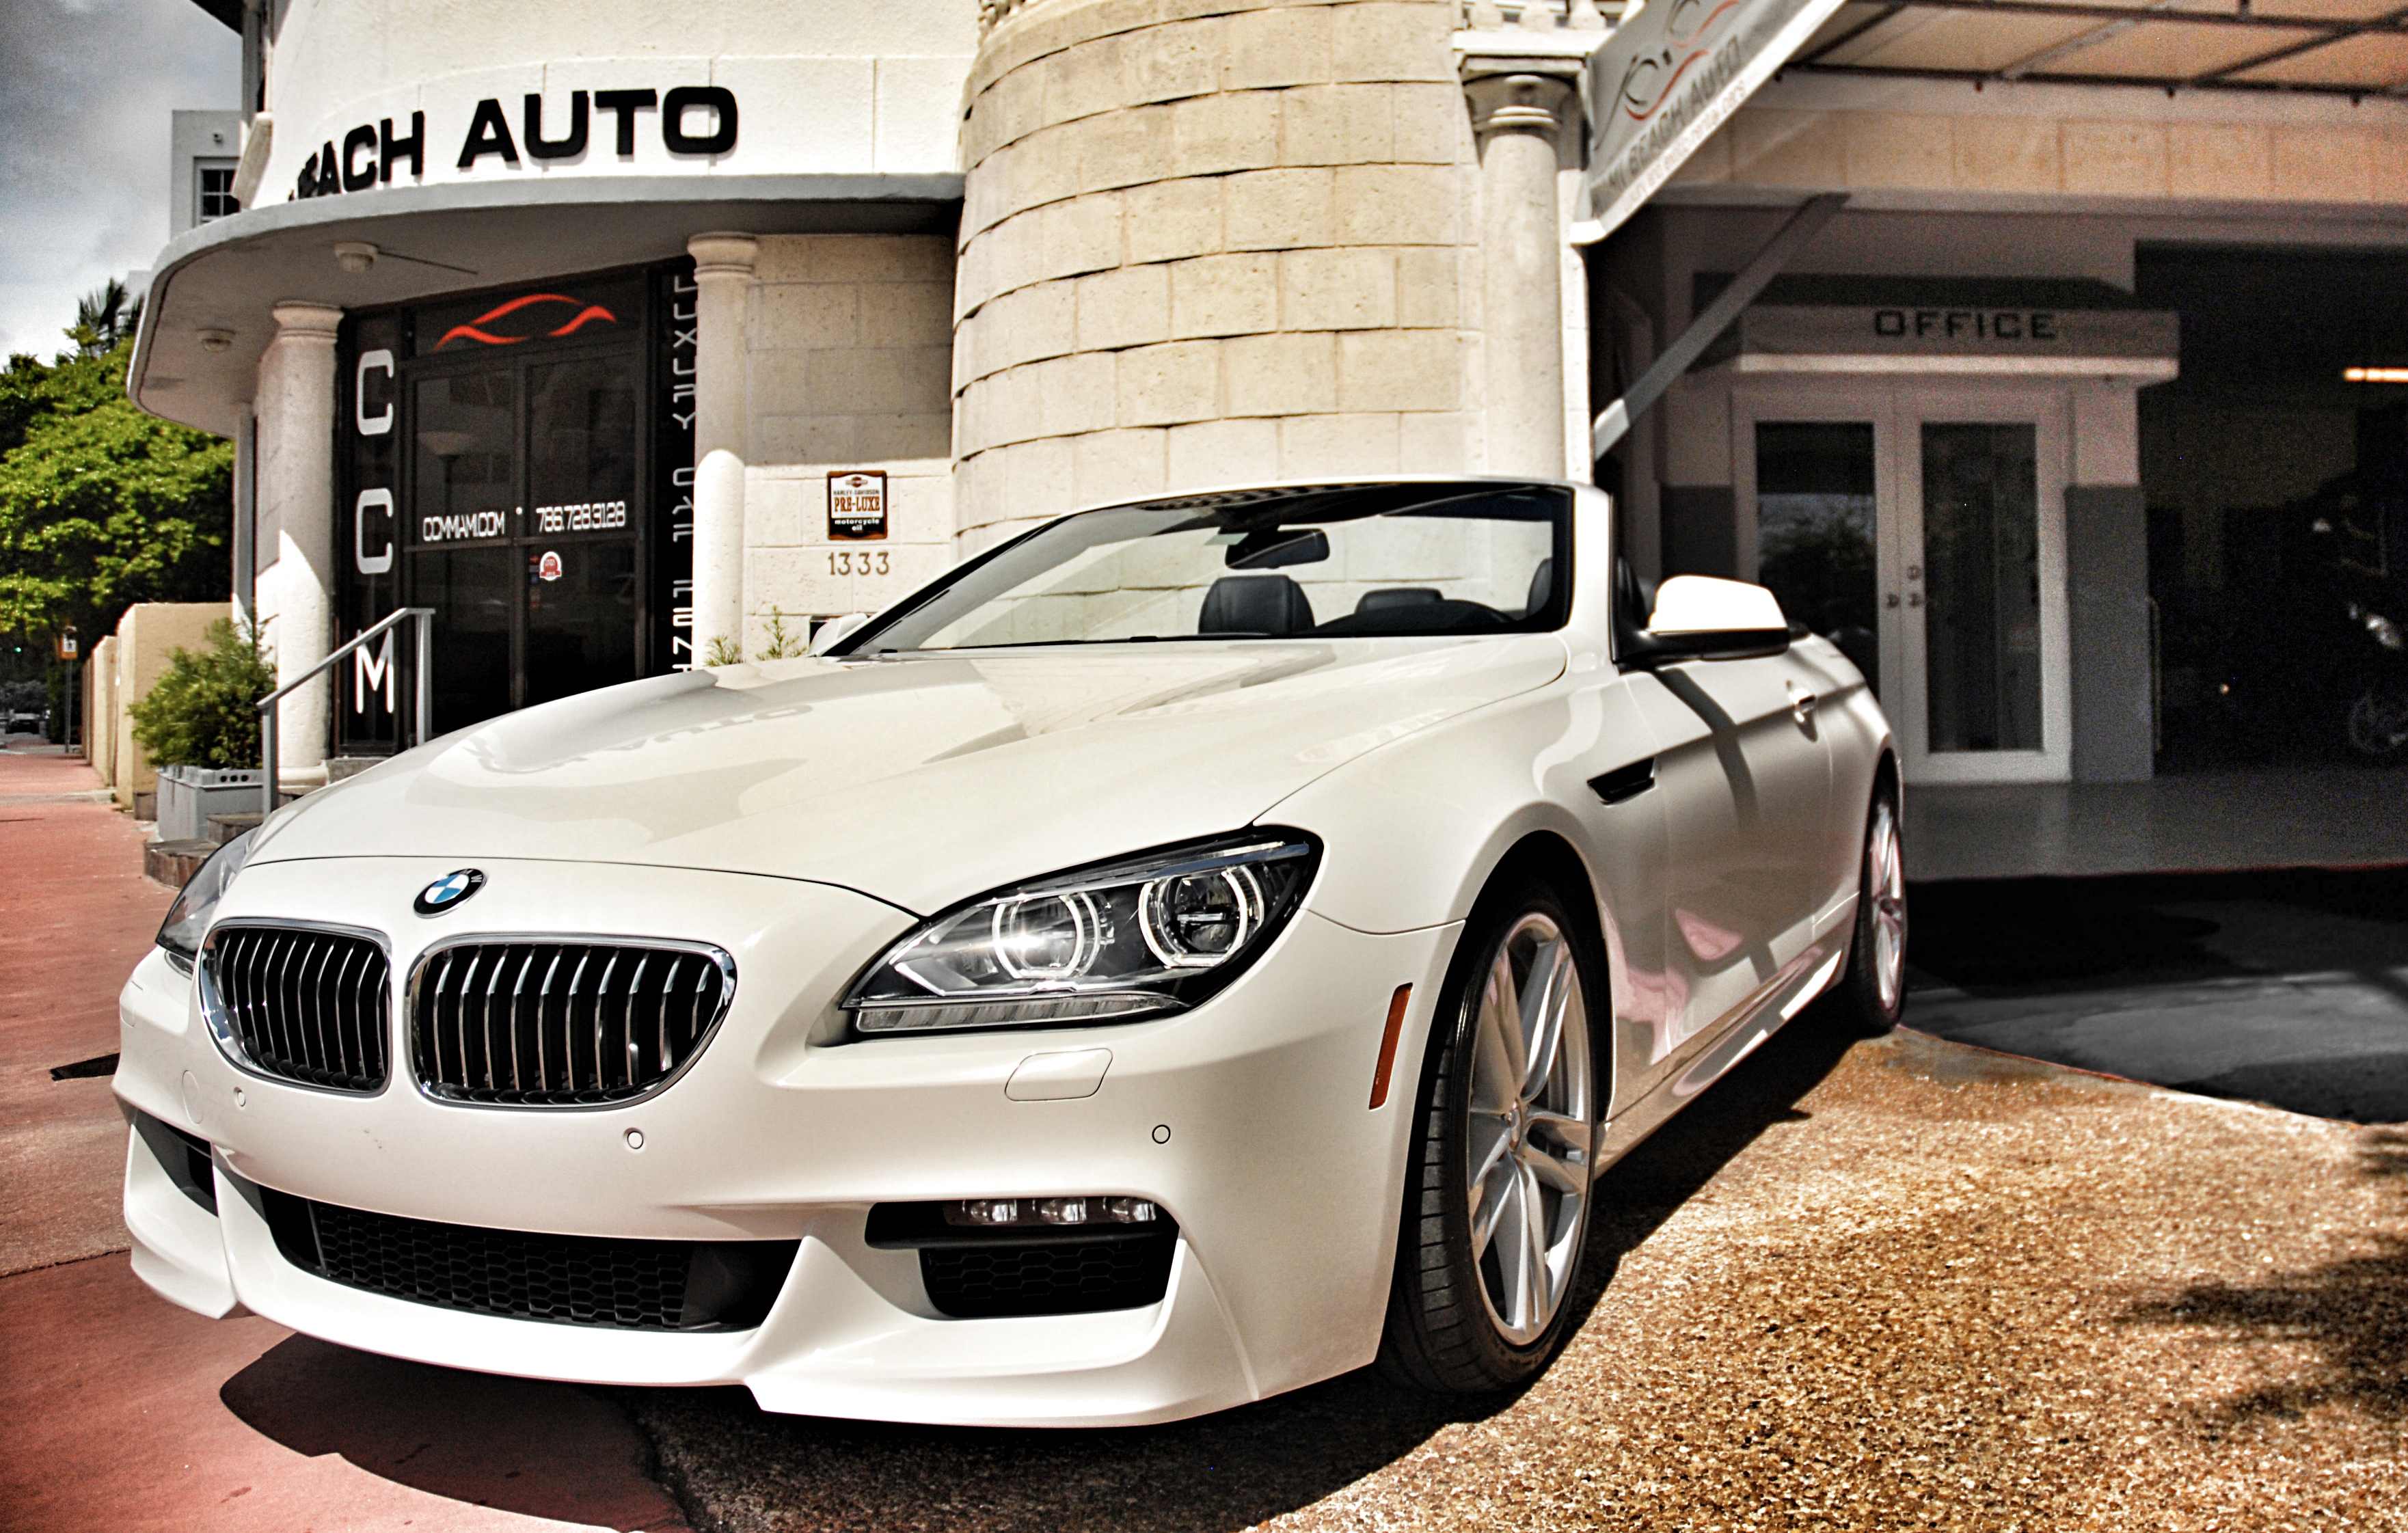 Luxury Car Rental In Miami >> Exotic Car Rental Miami Luxury Car Rental Miami Gotham | Autos Post